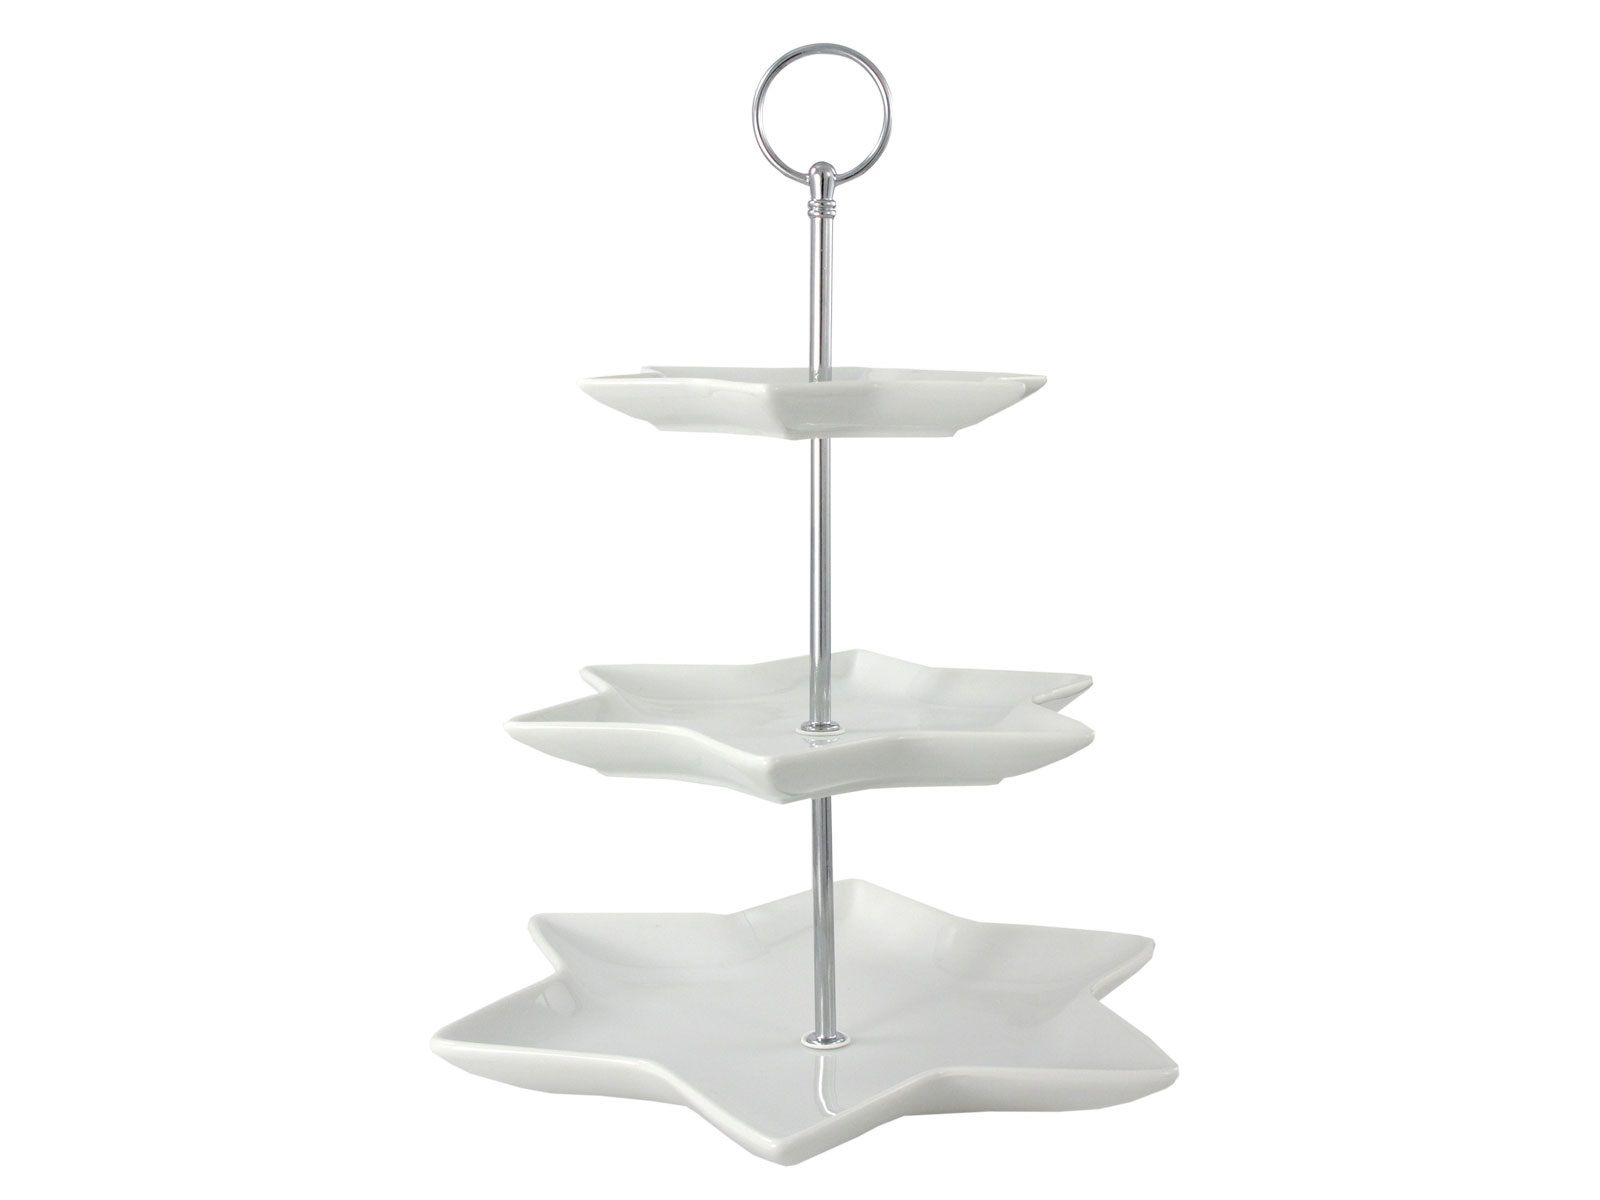 etagere_ster_3laags